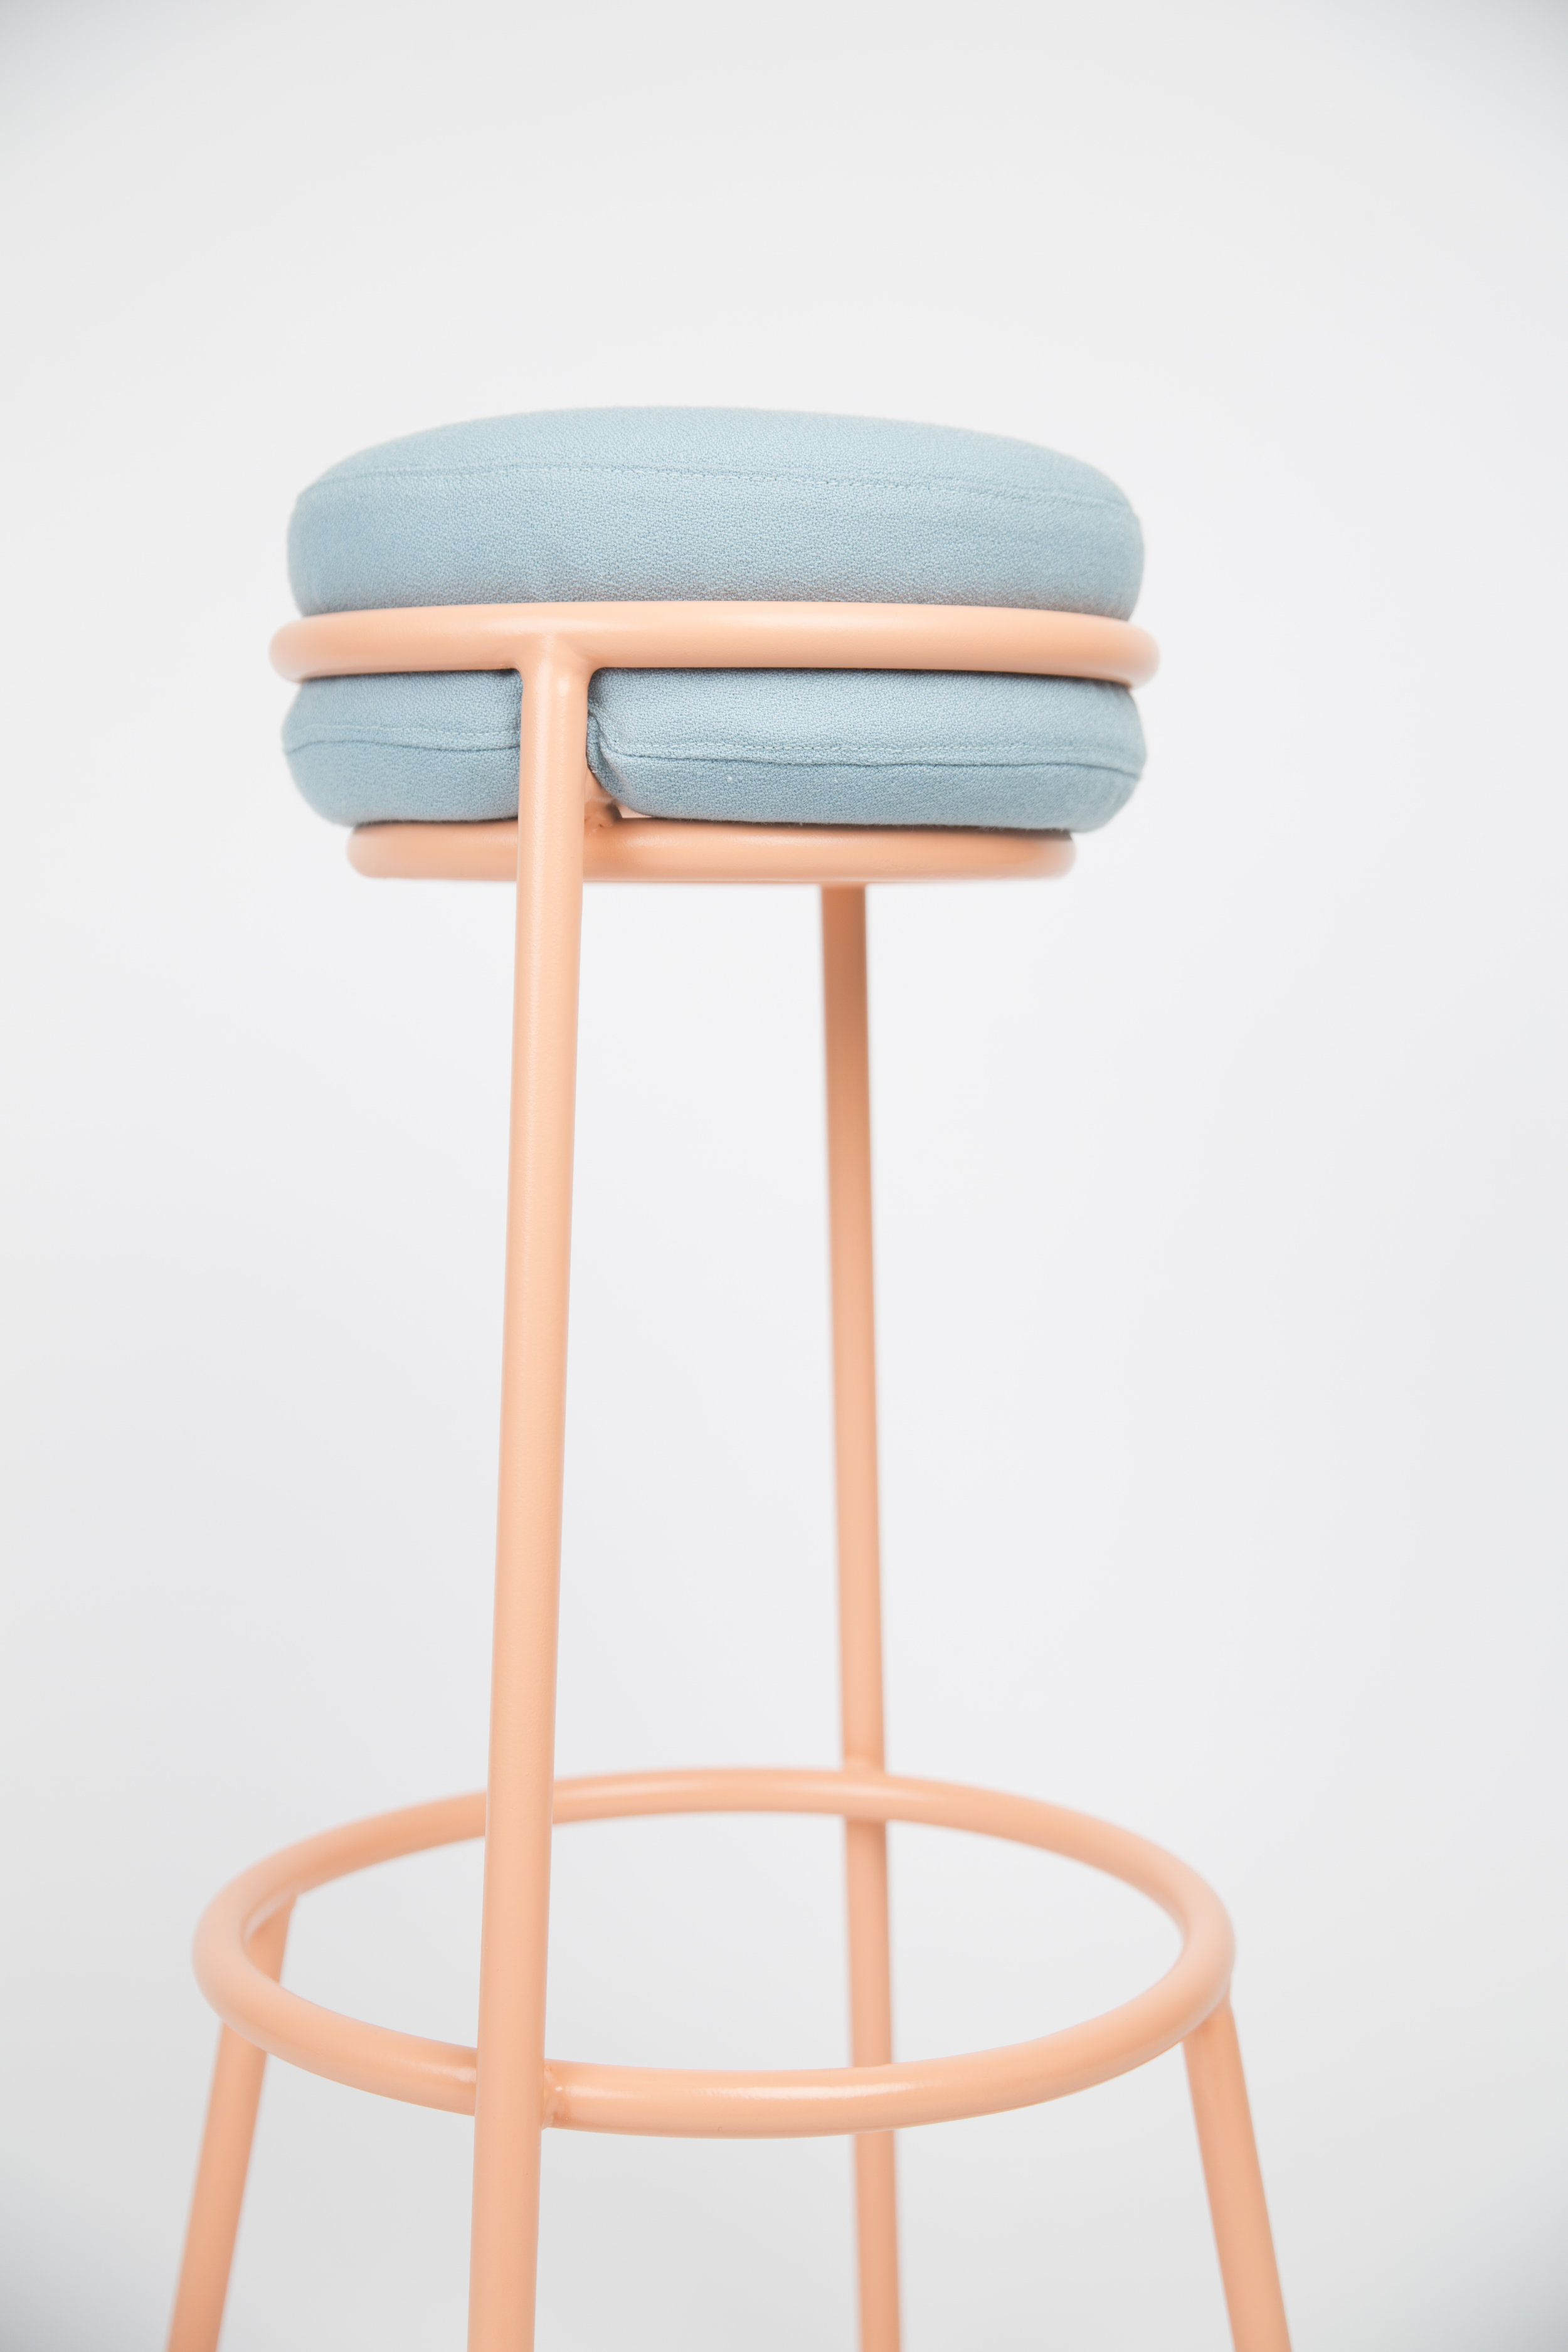 Muffin Top Barstool, 2017   Materials: Powercoated frame and Gabriel Fabric: Gaja C2C  Muffin Top is a barstool that has been designed with versatility in mind.